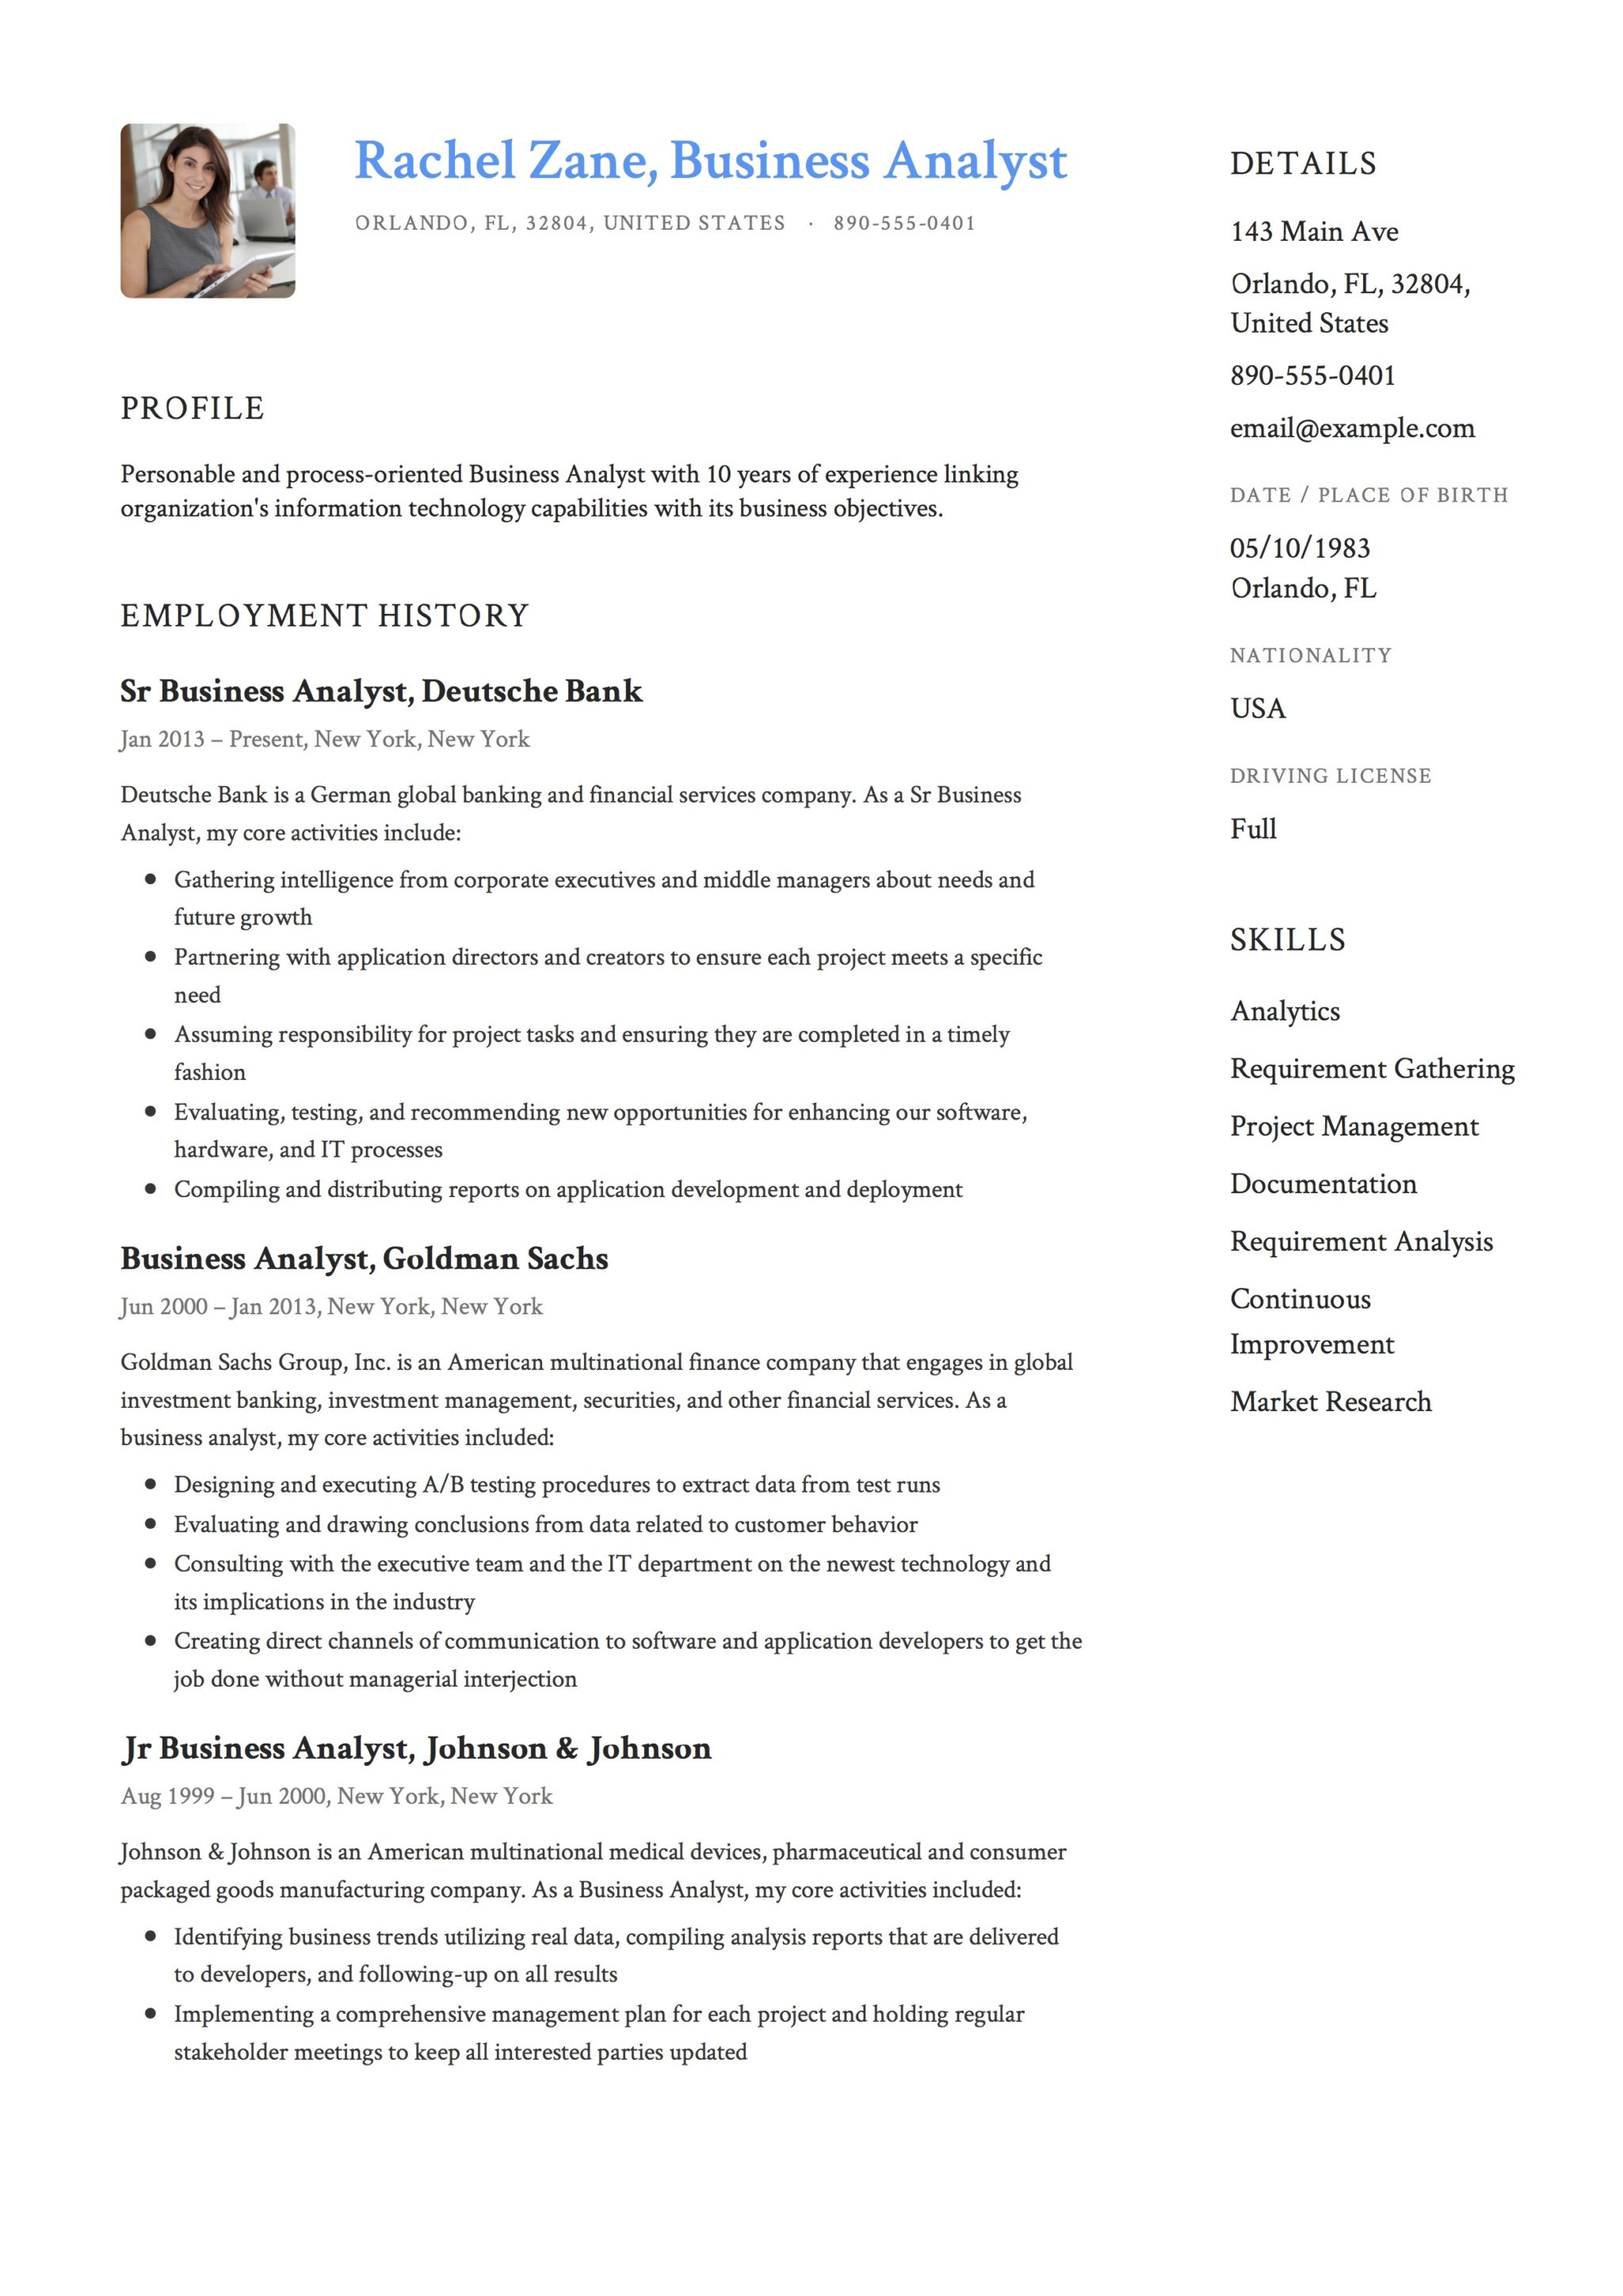 12 business analyst resume samples 2018 free downloads business analyst resume template cheaphphosting